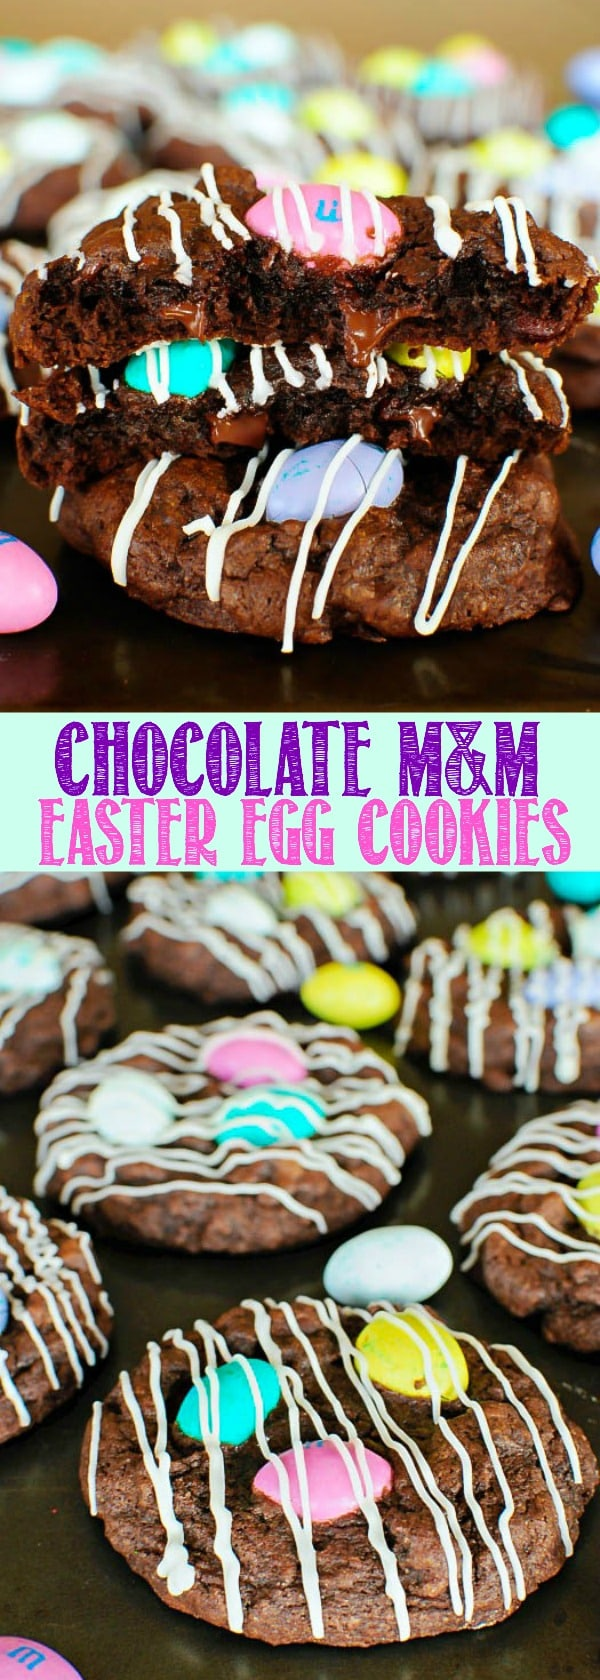 Chocolate M&M Easter Egg Cookies